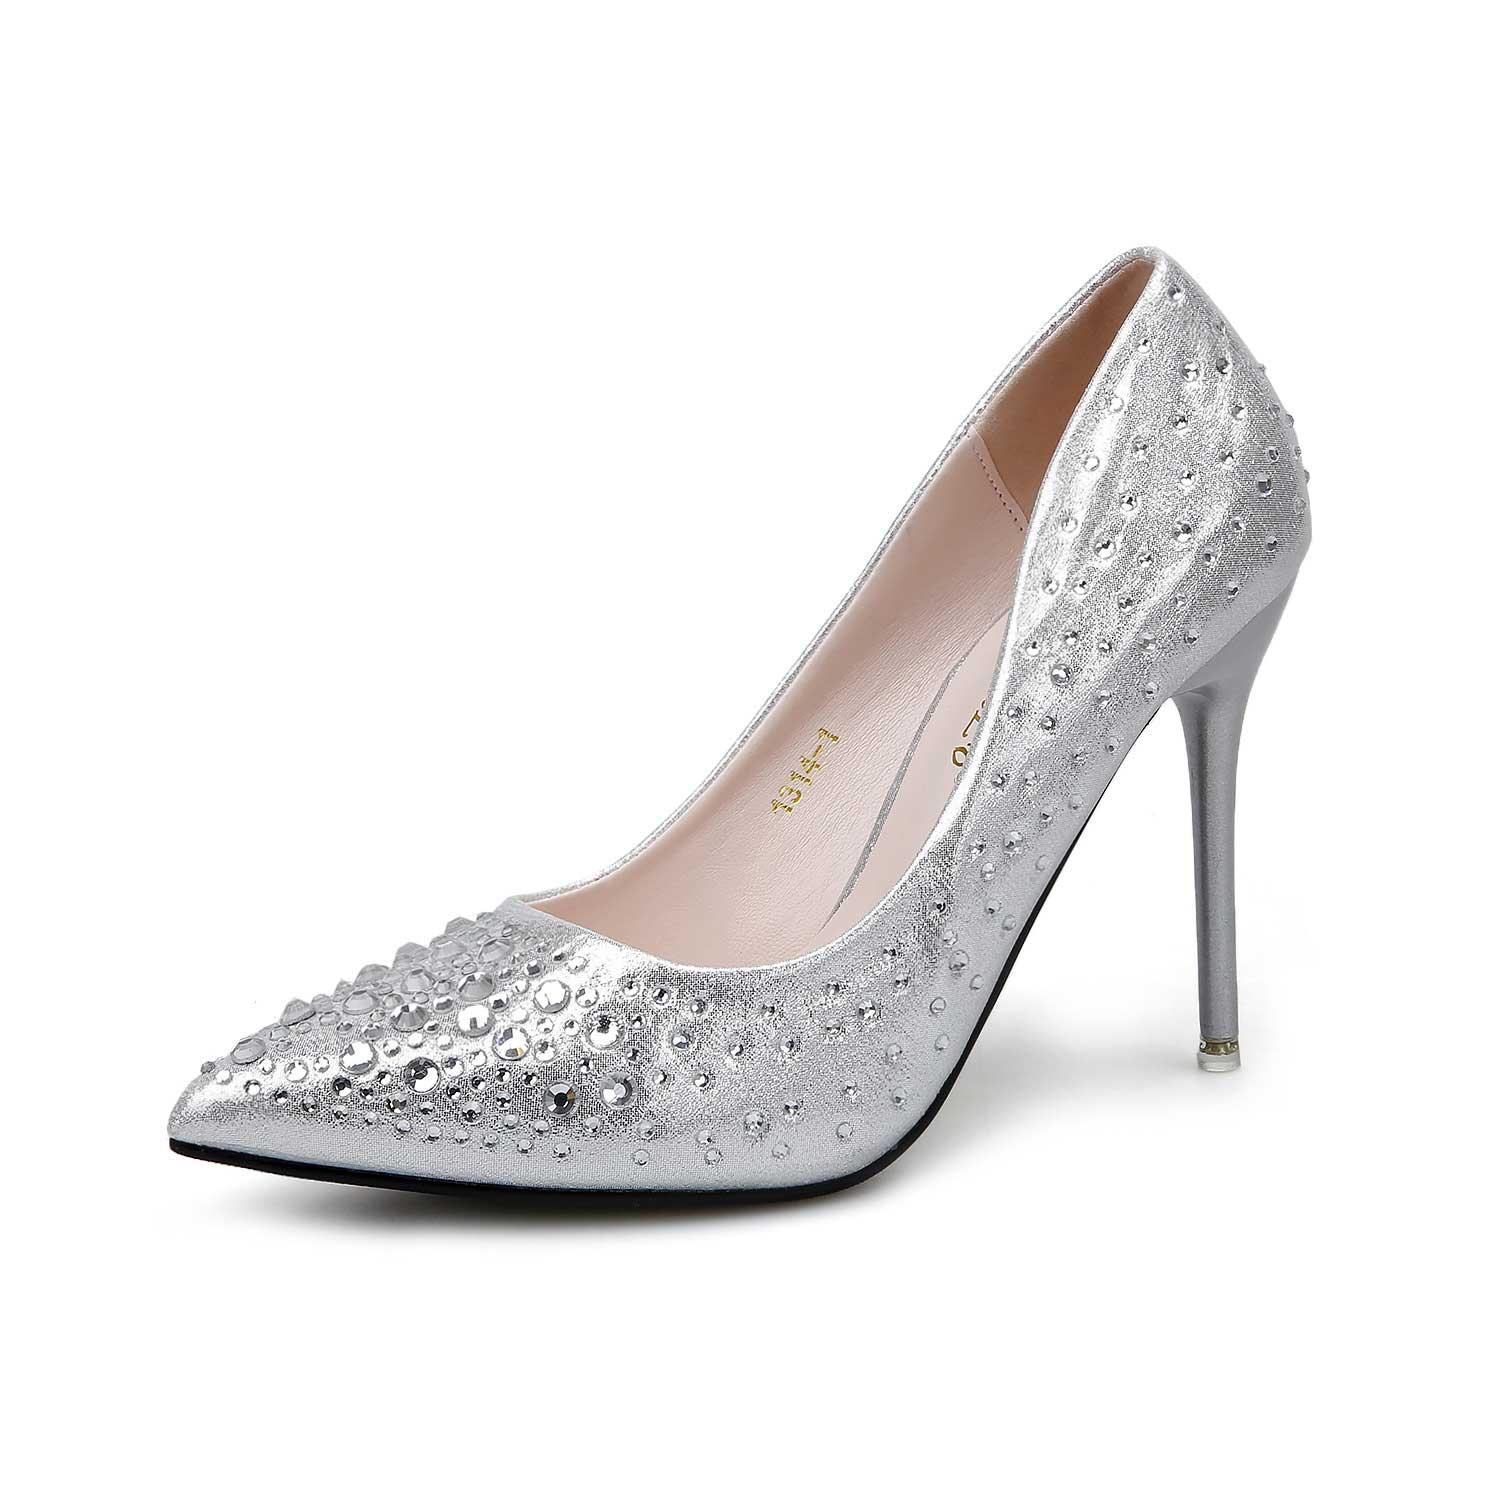 I bought the shoes for my wedding. They are gorgeous, surprisingly comfortable. It is a good choice. I chose the size according to their size chart and the shoes fit me well. Greatly recommended if you are looking for beautiful shoes:)Price: $